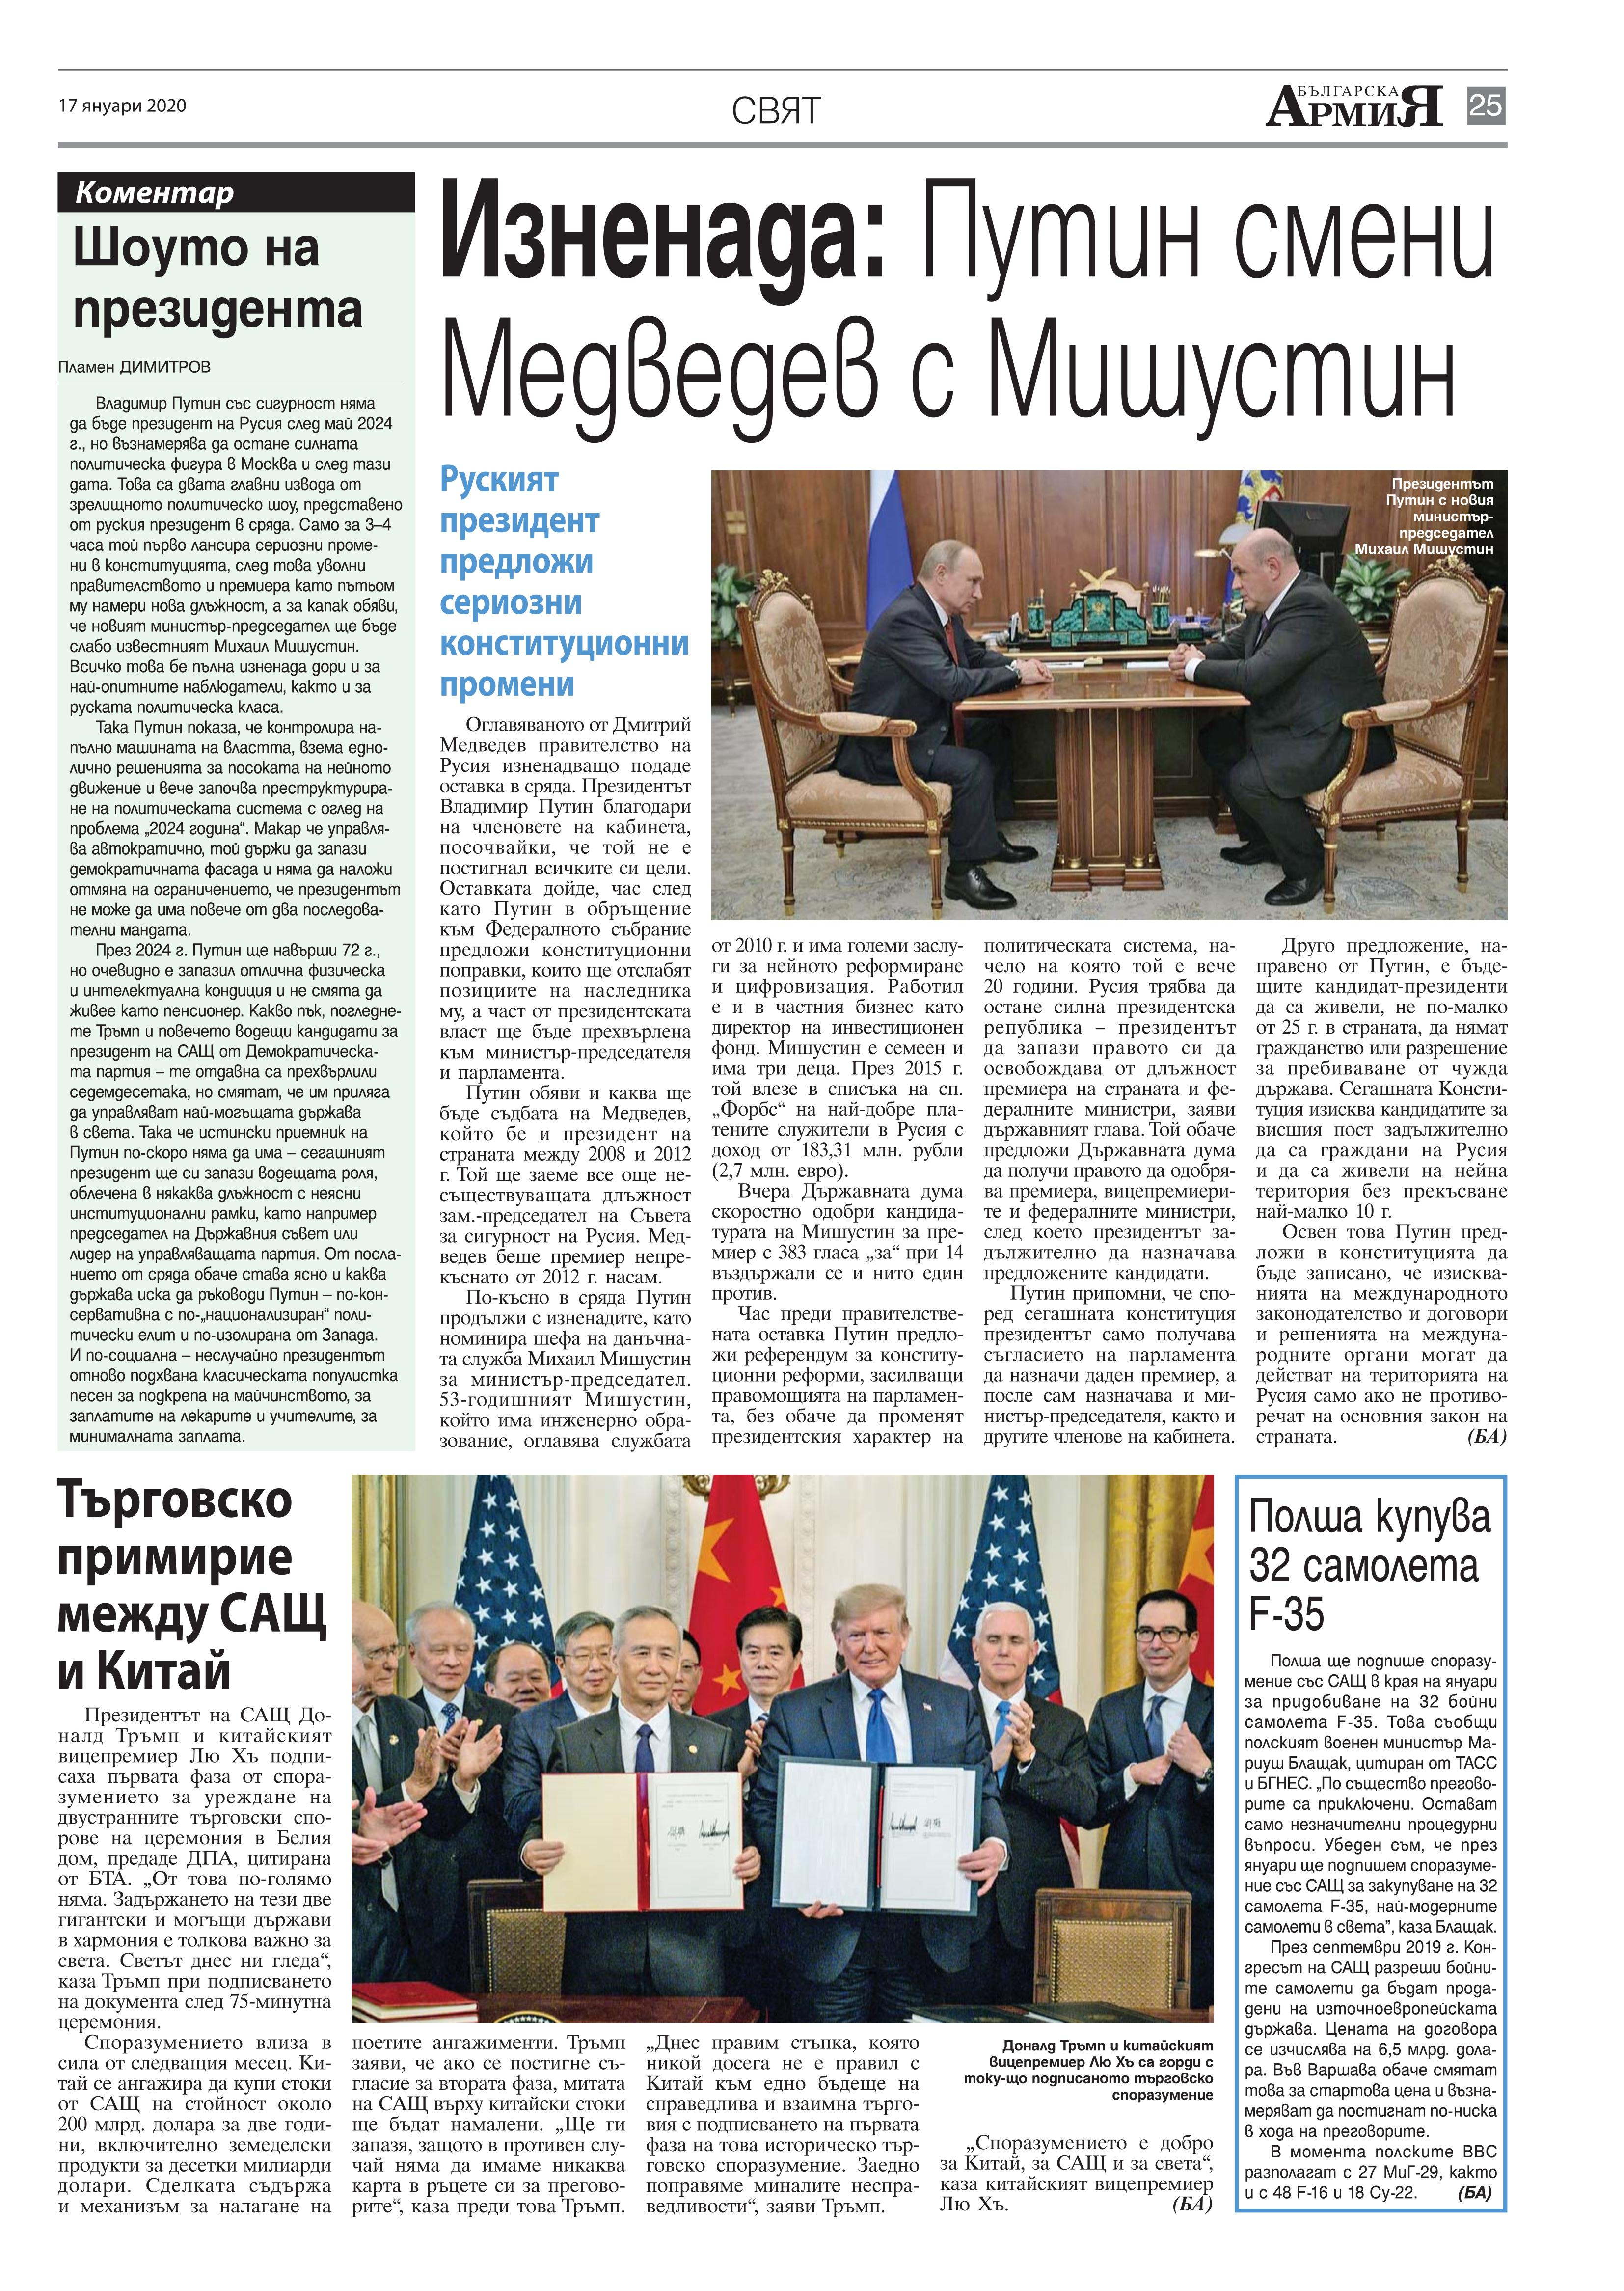 https://armymedia.bg/wp-content/uploads/2015/06/25.page1_-103.jpg